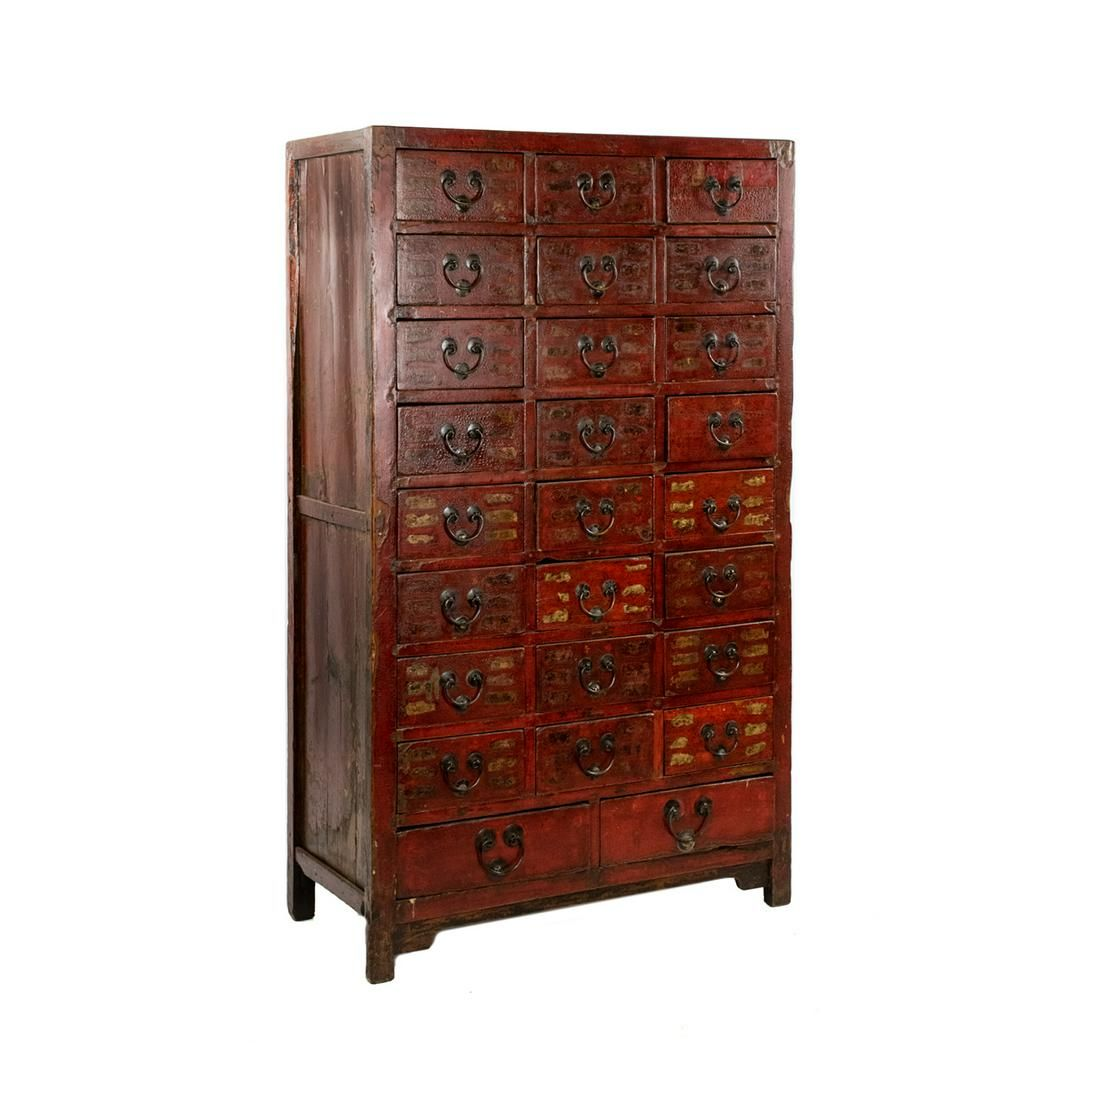 Late 19th C Chinese 26 Drawer Apothecary Cabinet